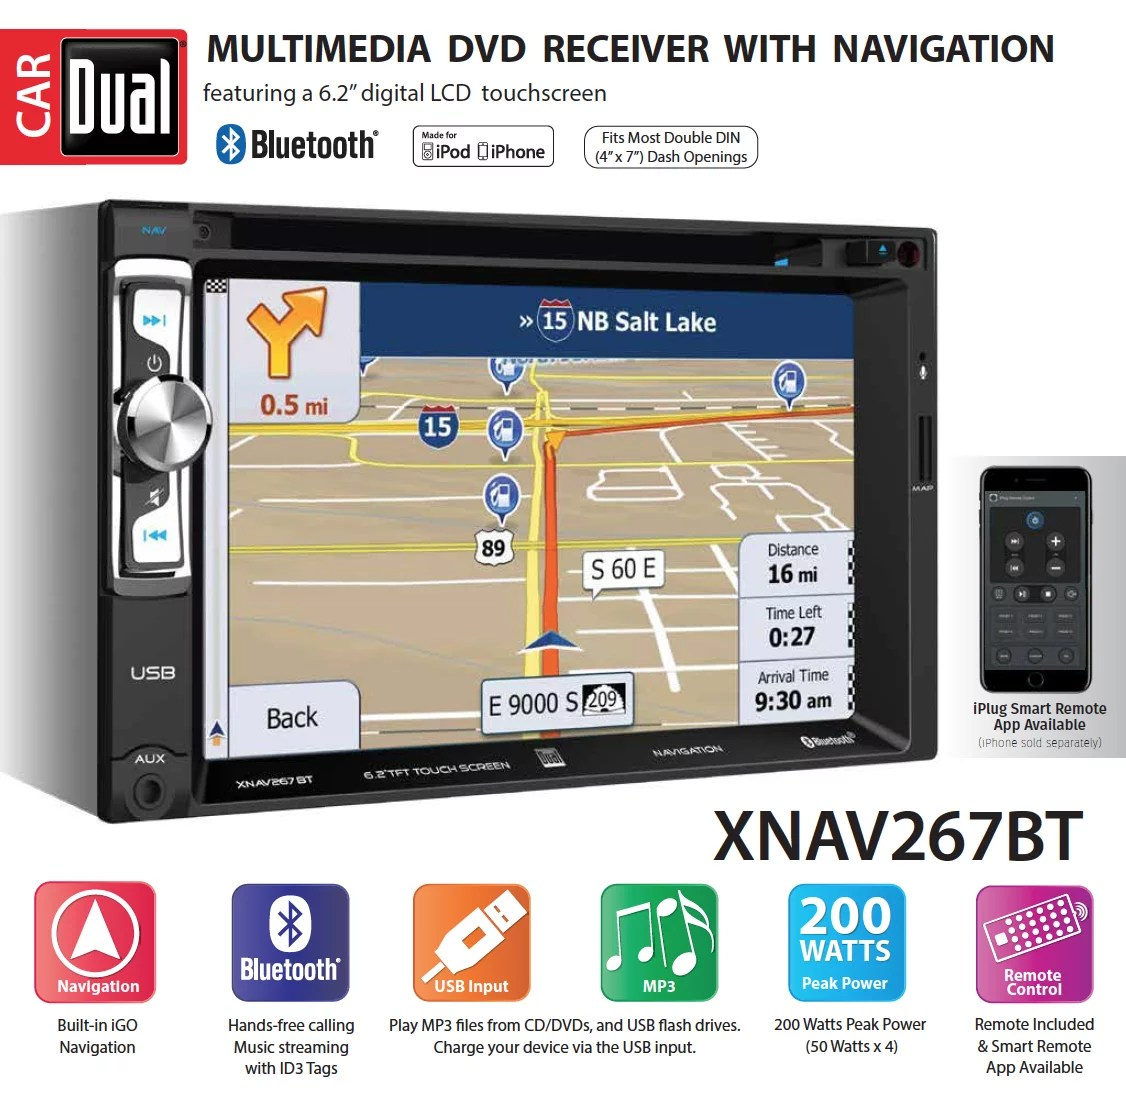 hight resolution of dual electronics xnav267bt 6 2 inch led backlit lcd multimedia touch screen double din car stereo with built in navigation bluetooth iplug smart app